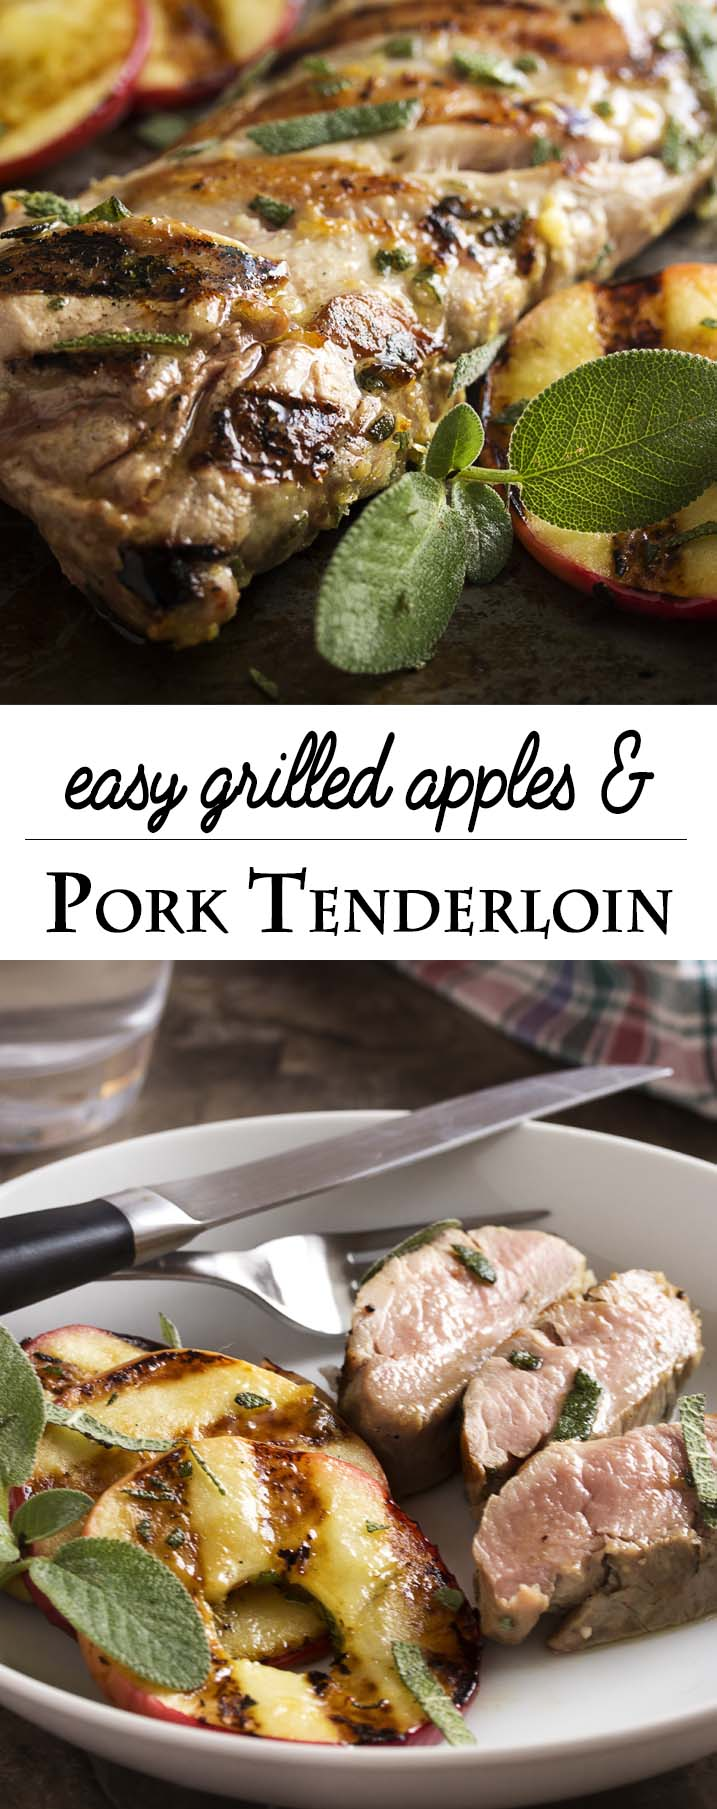 Fall grilling is at its best with this easy grilled pork tenderloin which is paired with grilled apple slices and fresh sage. Yum! | justalittlebitofbacon.com